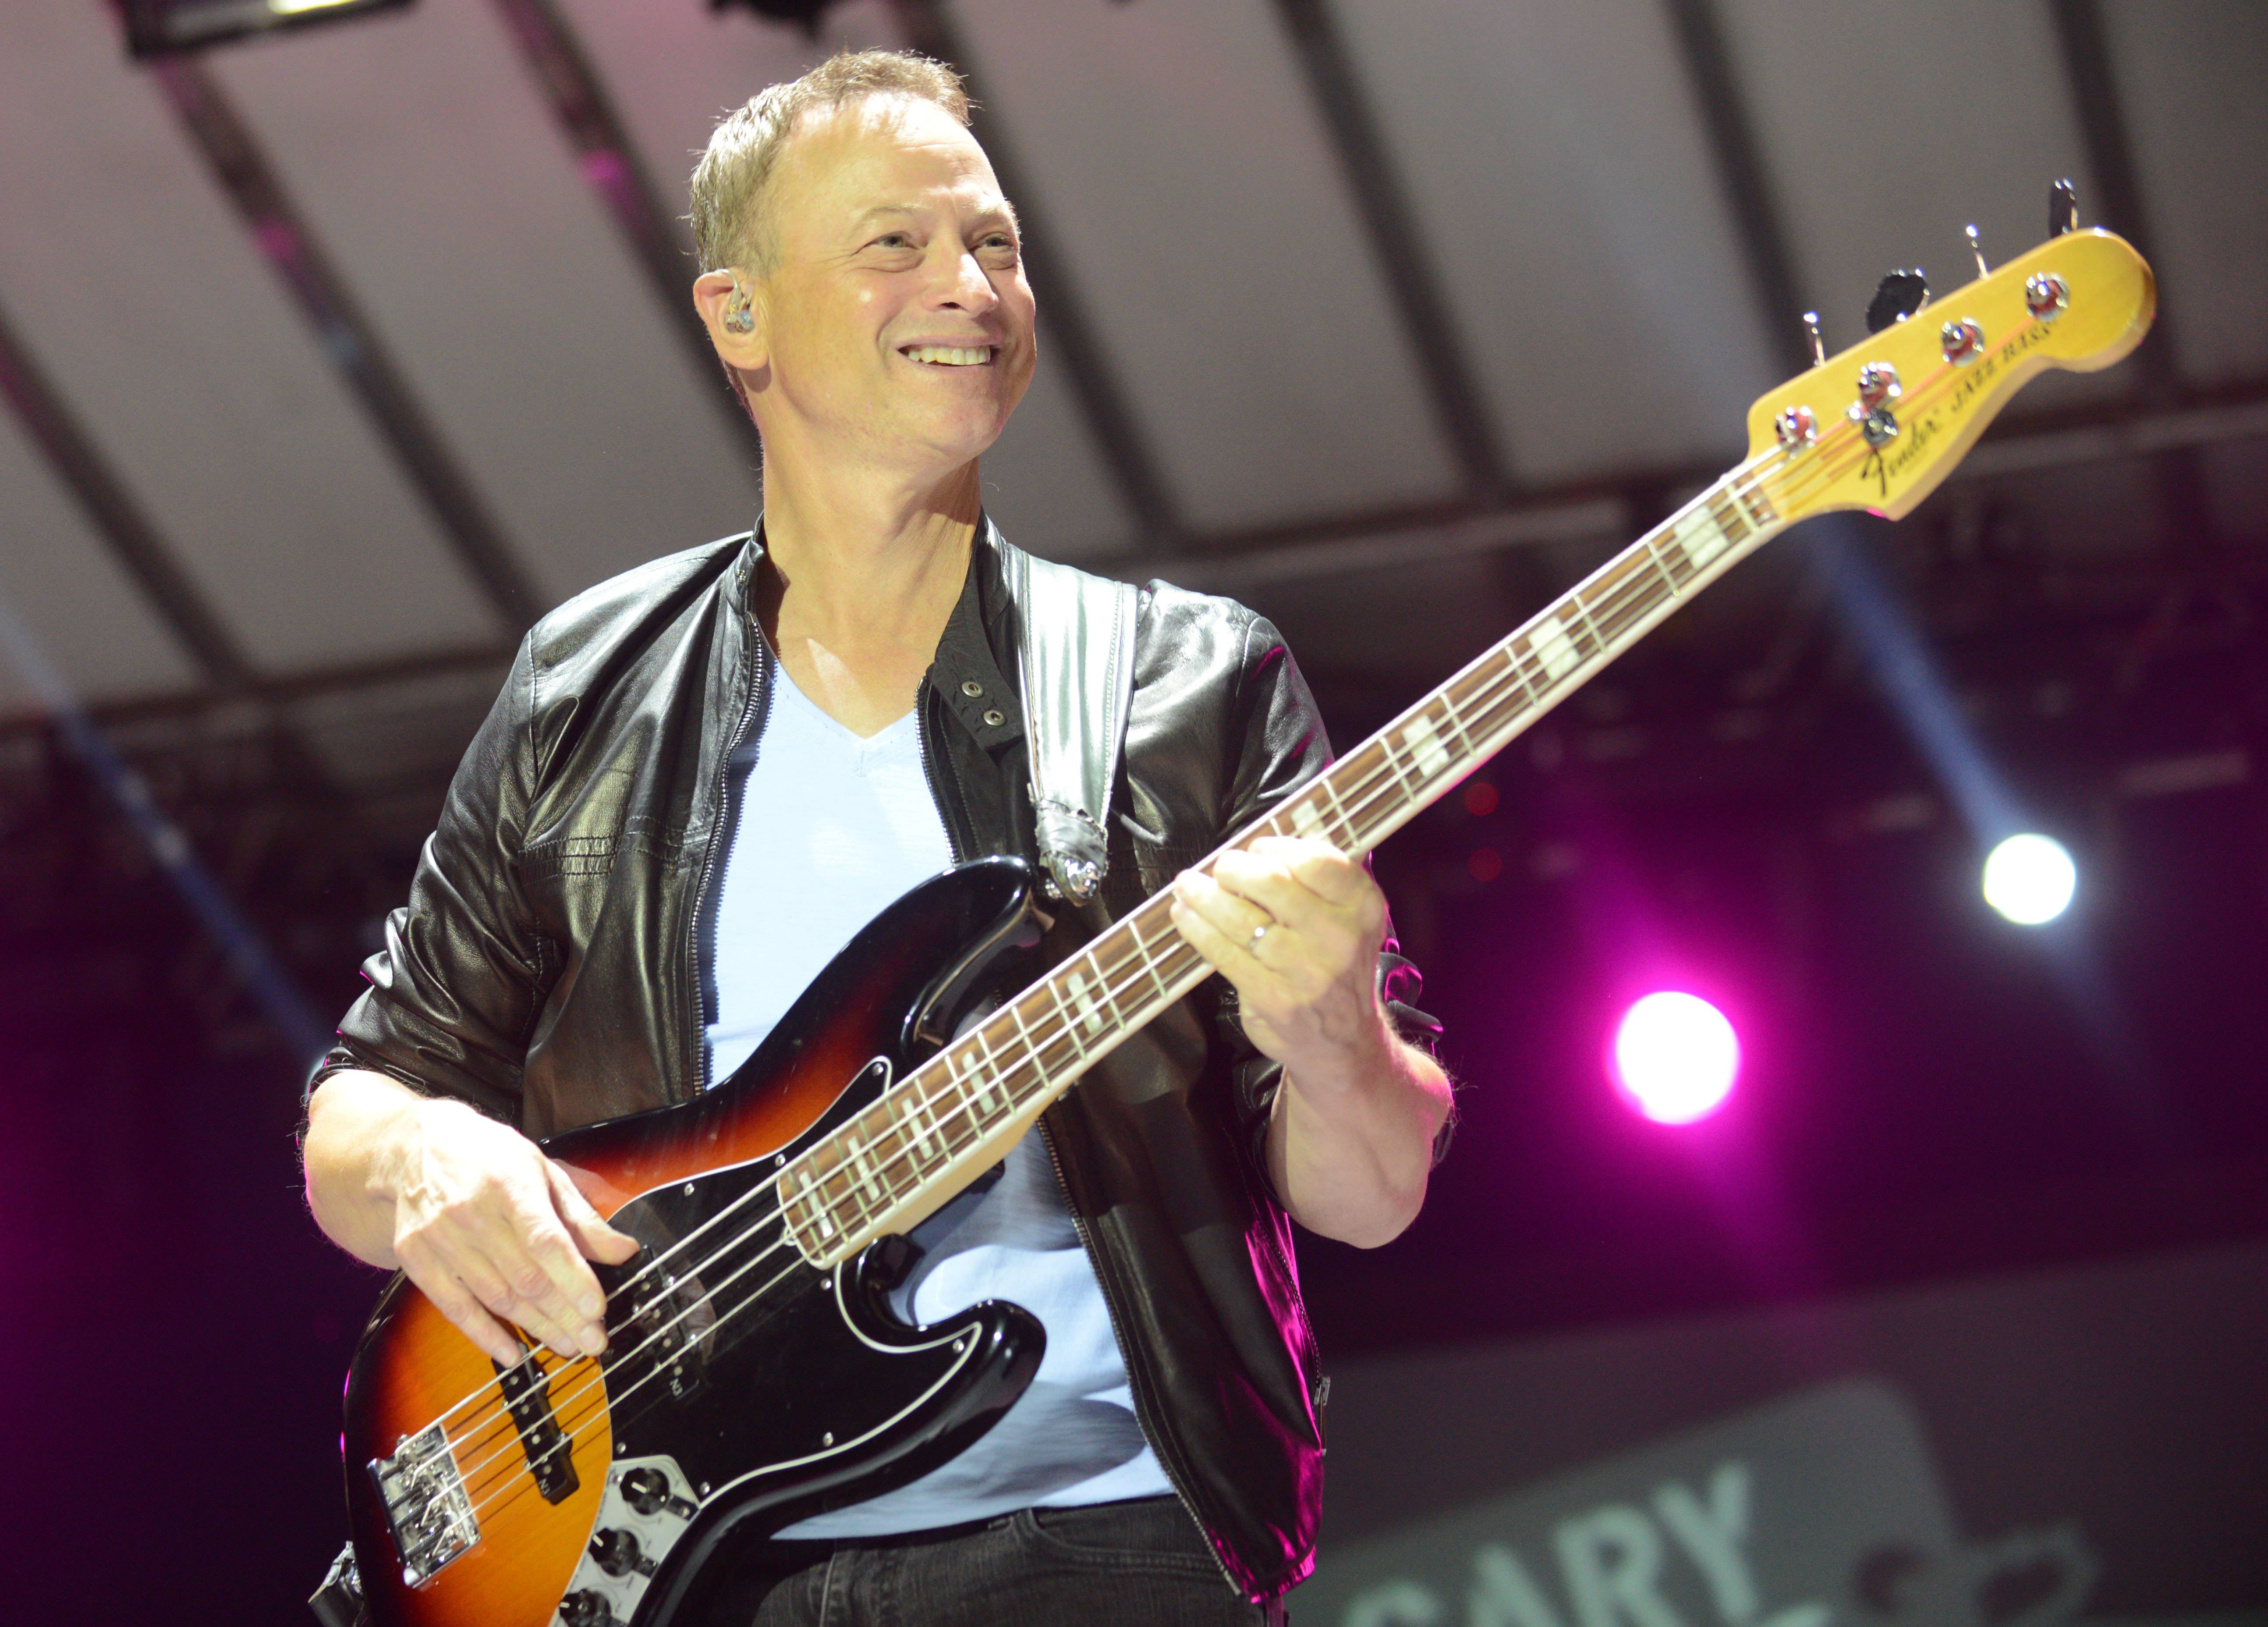 Actor Gary Sinise and his Lt. Dan Band, took the stage around 8: 45 p.m. Saturday in Wheaton's Cantigny Park. The concert raised money for Operation Support Our Troops America, an organization formed by a couple of Naperville moms to provide care packages for our troops overseas.